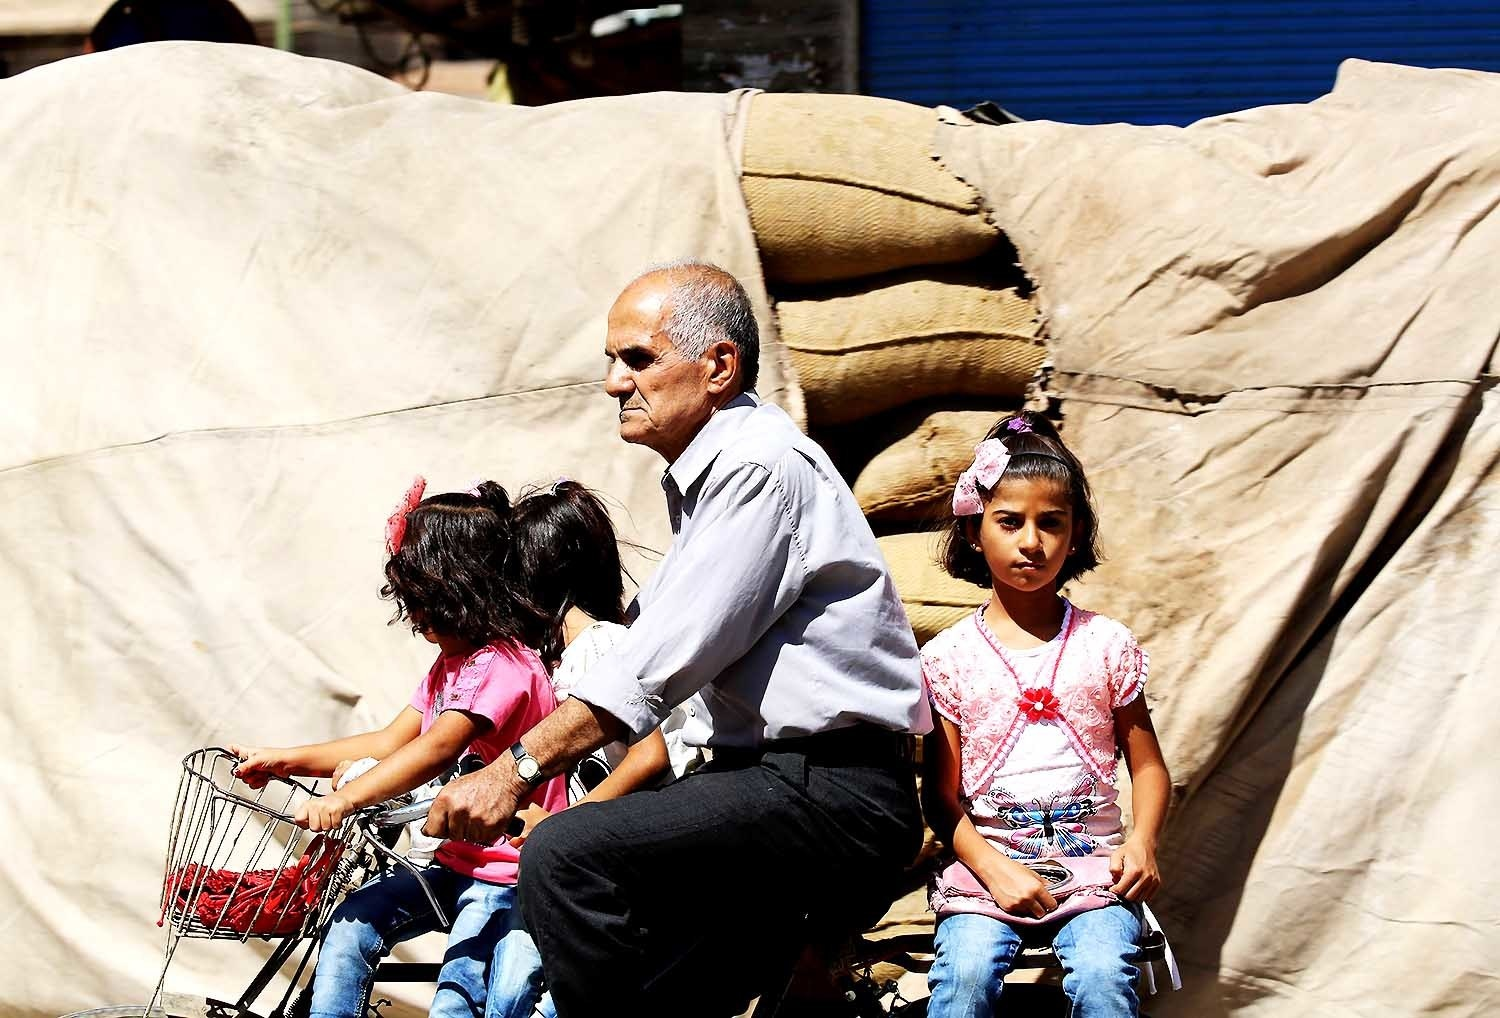 A man carries three girls on a bicycle in Qamishli. — AFP